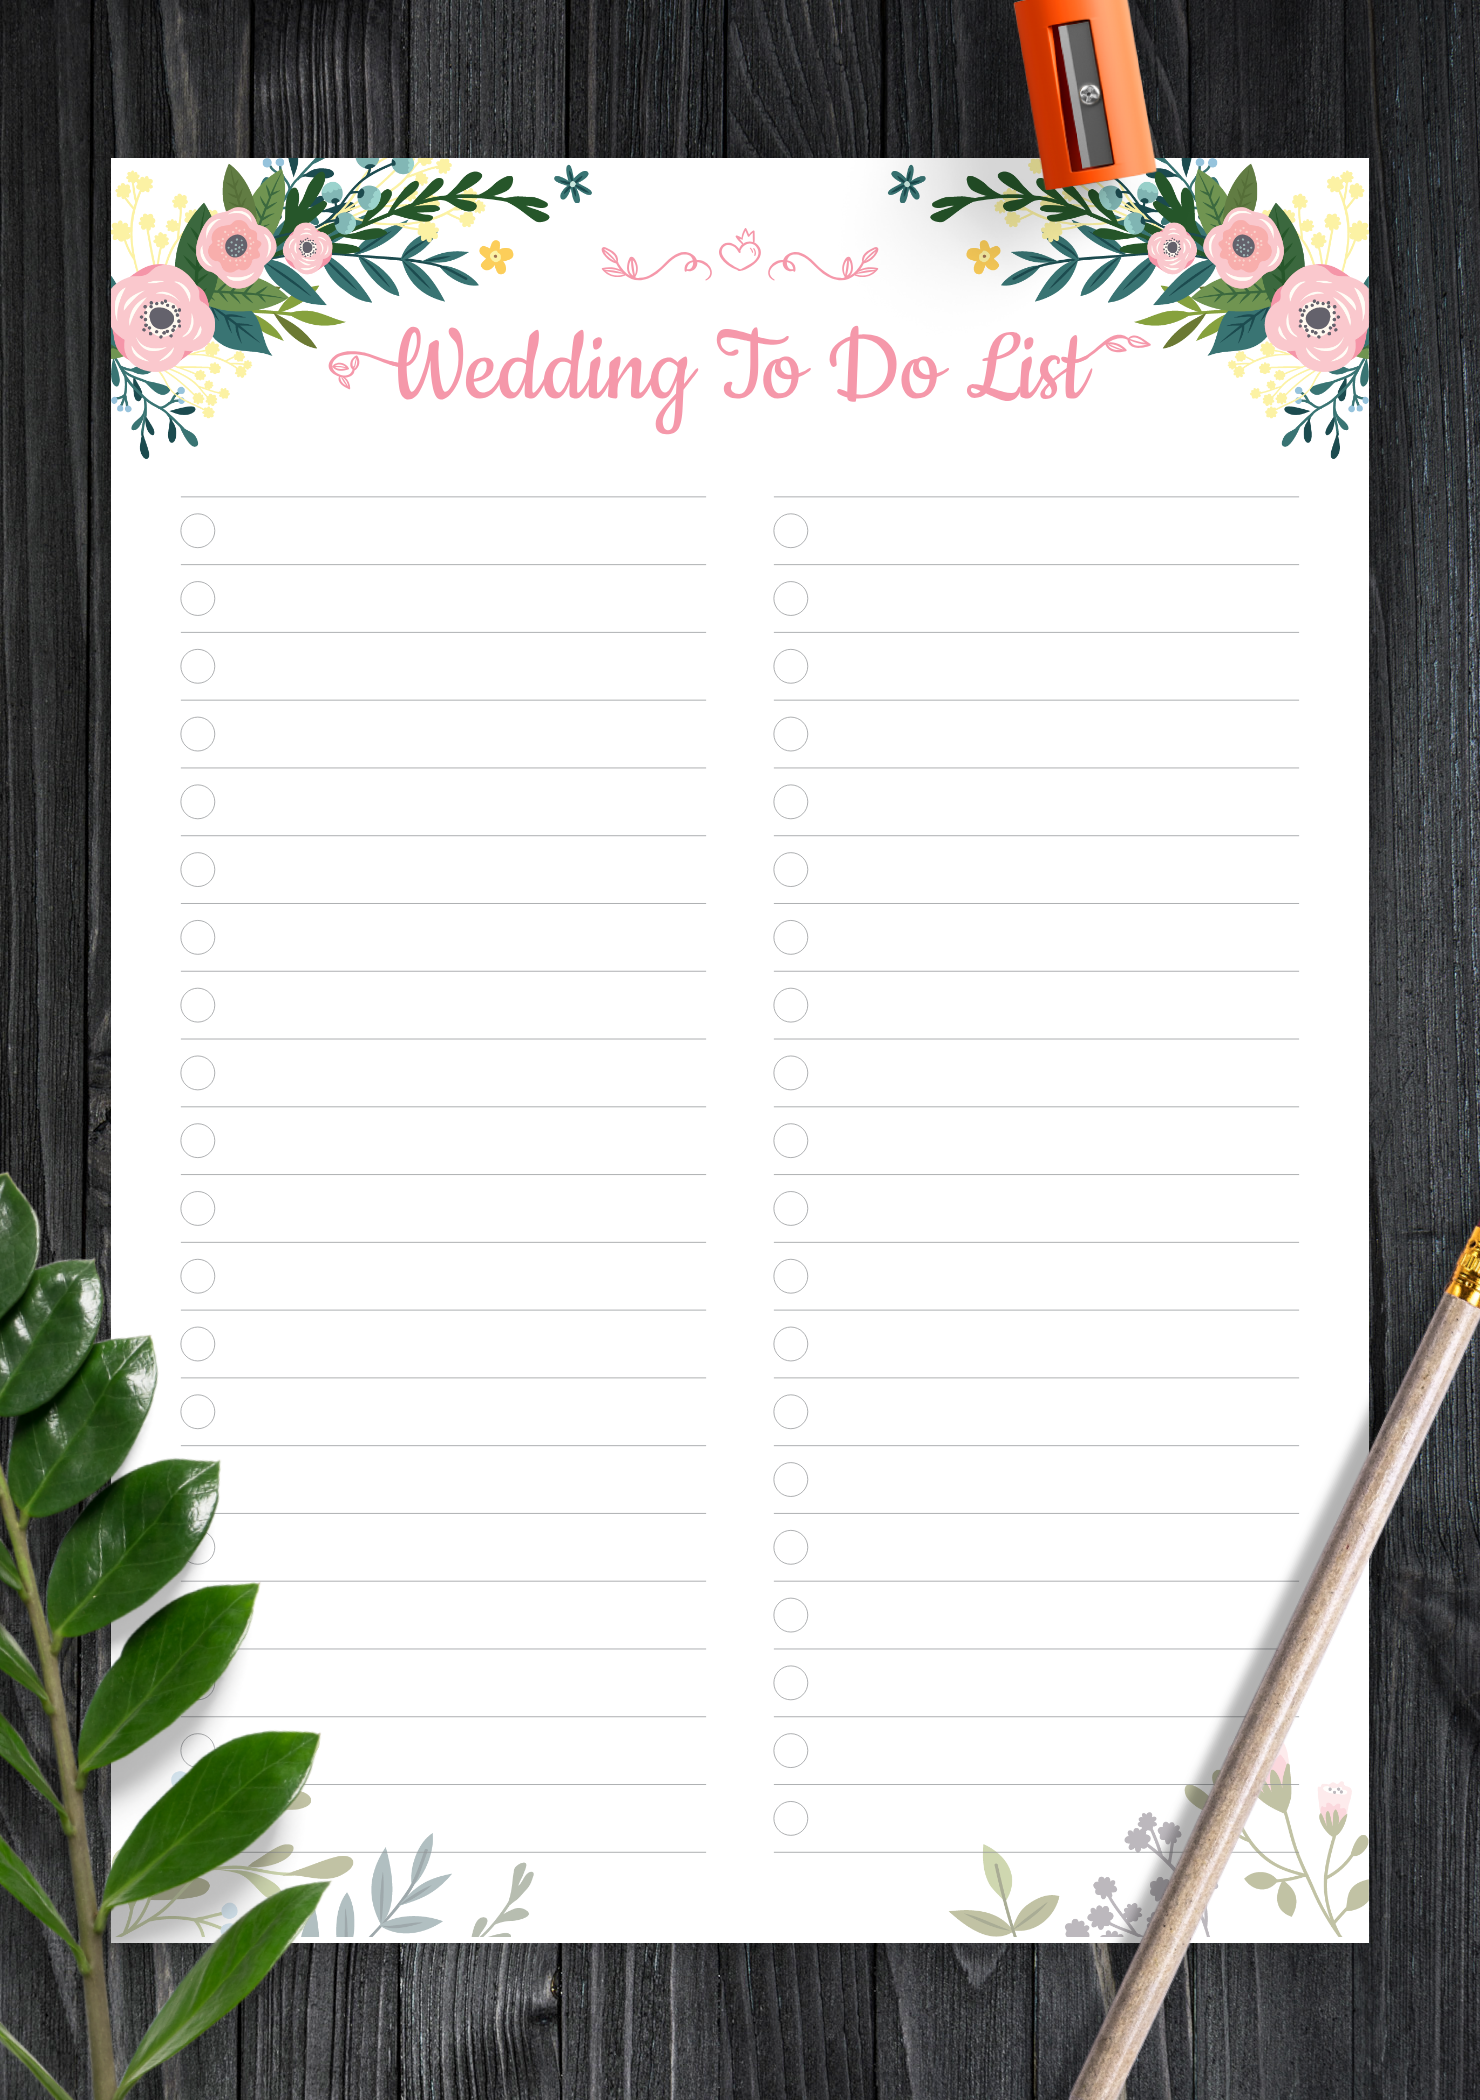 download printable wedding to do list pdf